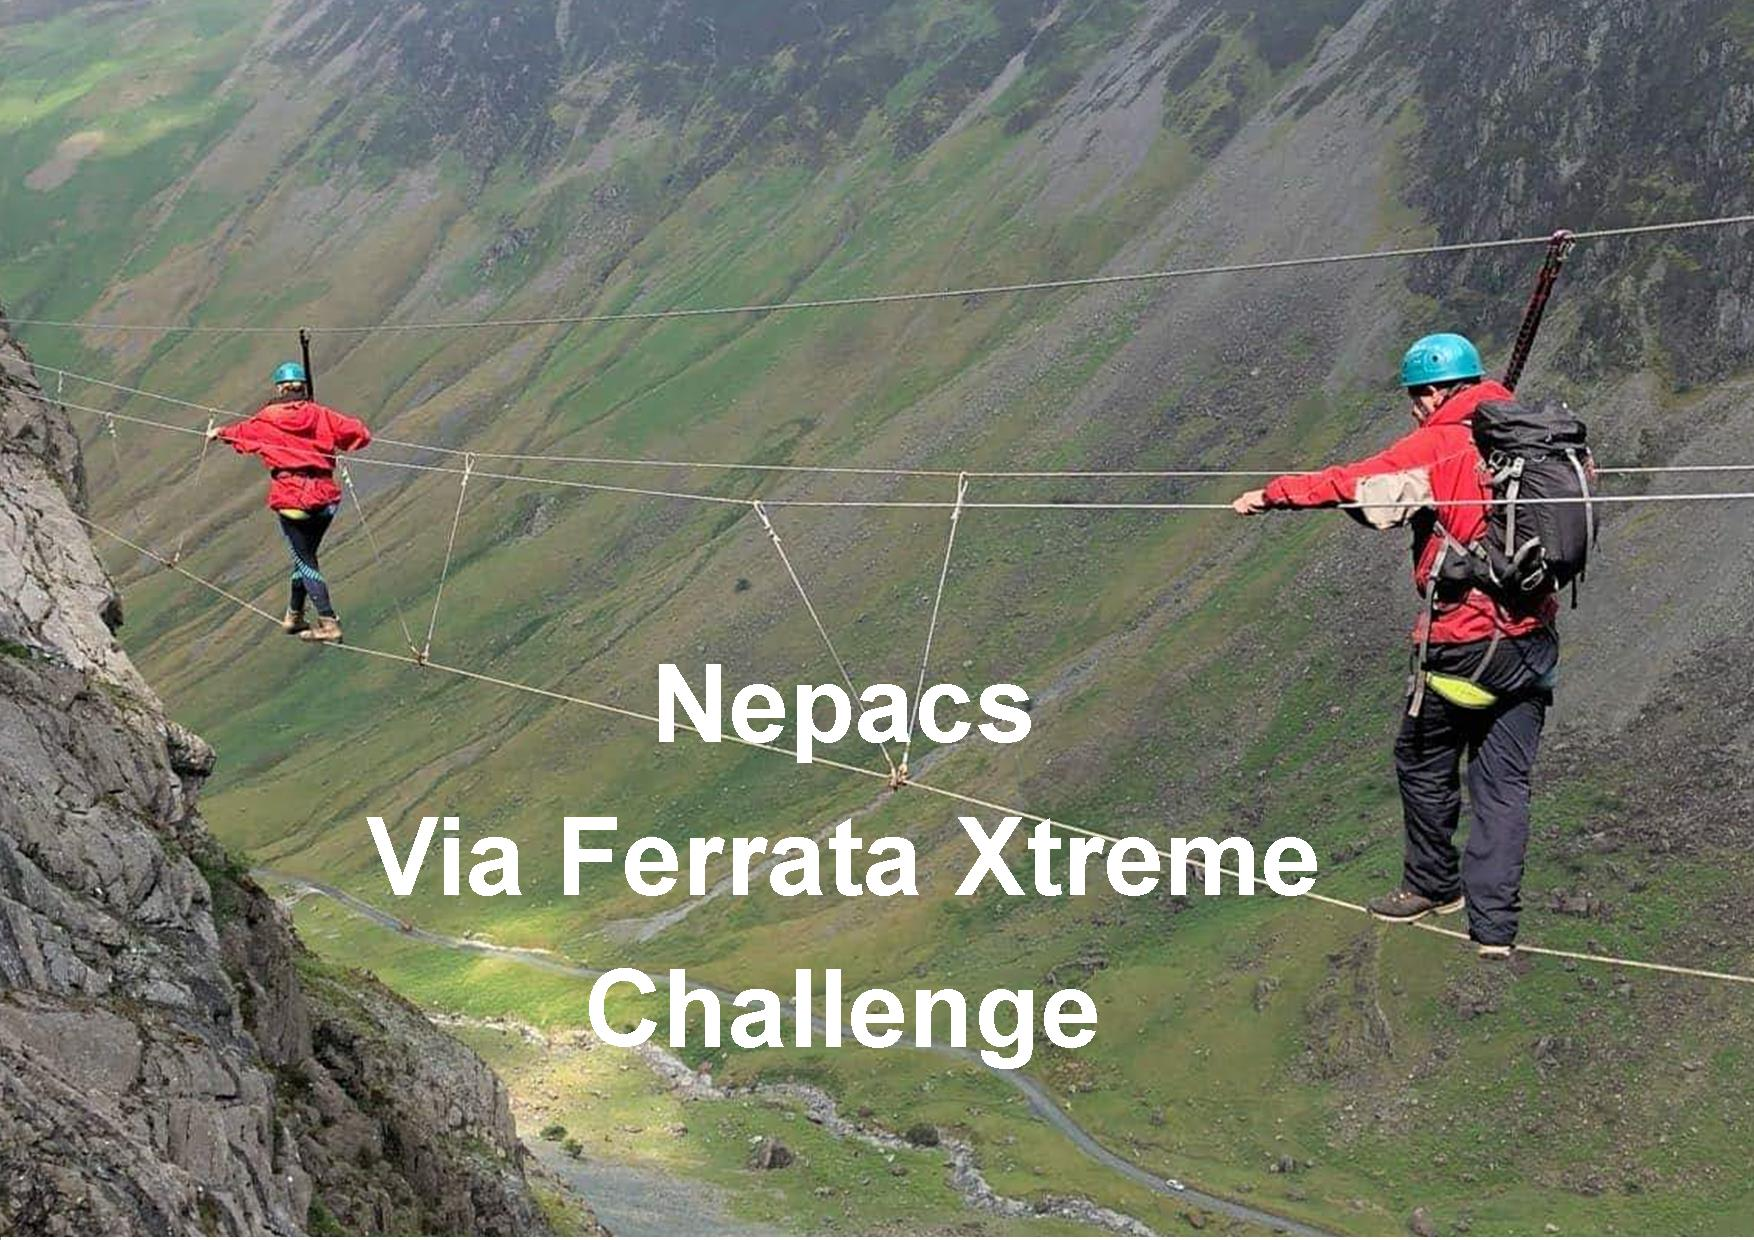 Nepacs team take on Via Ferrata Xtreme